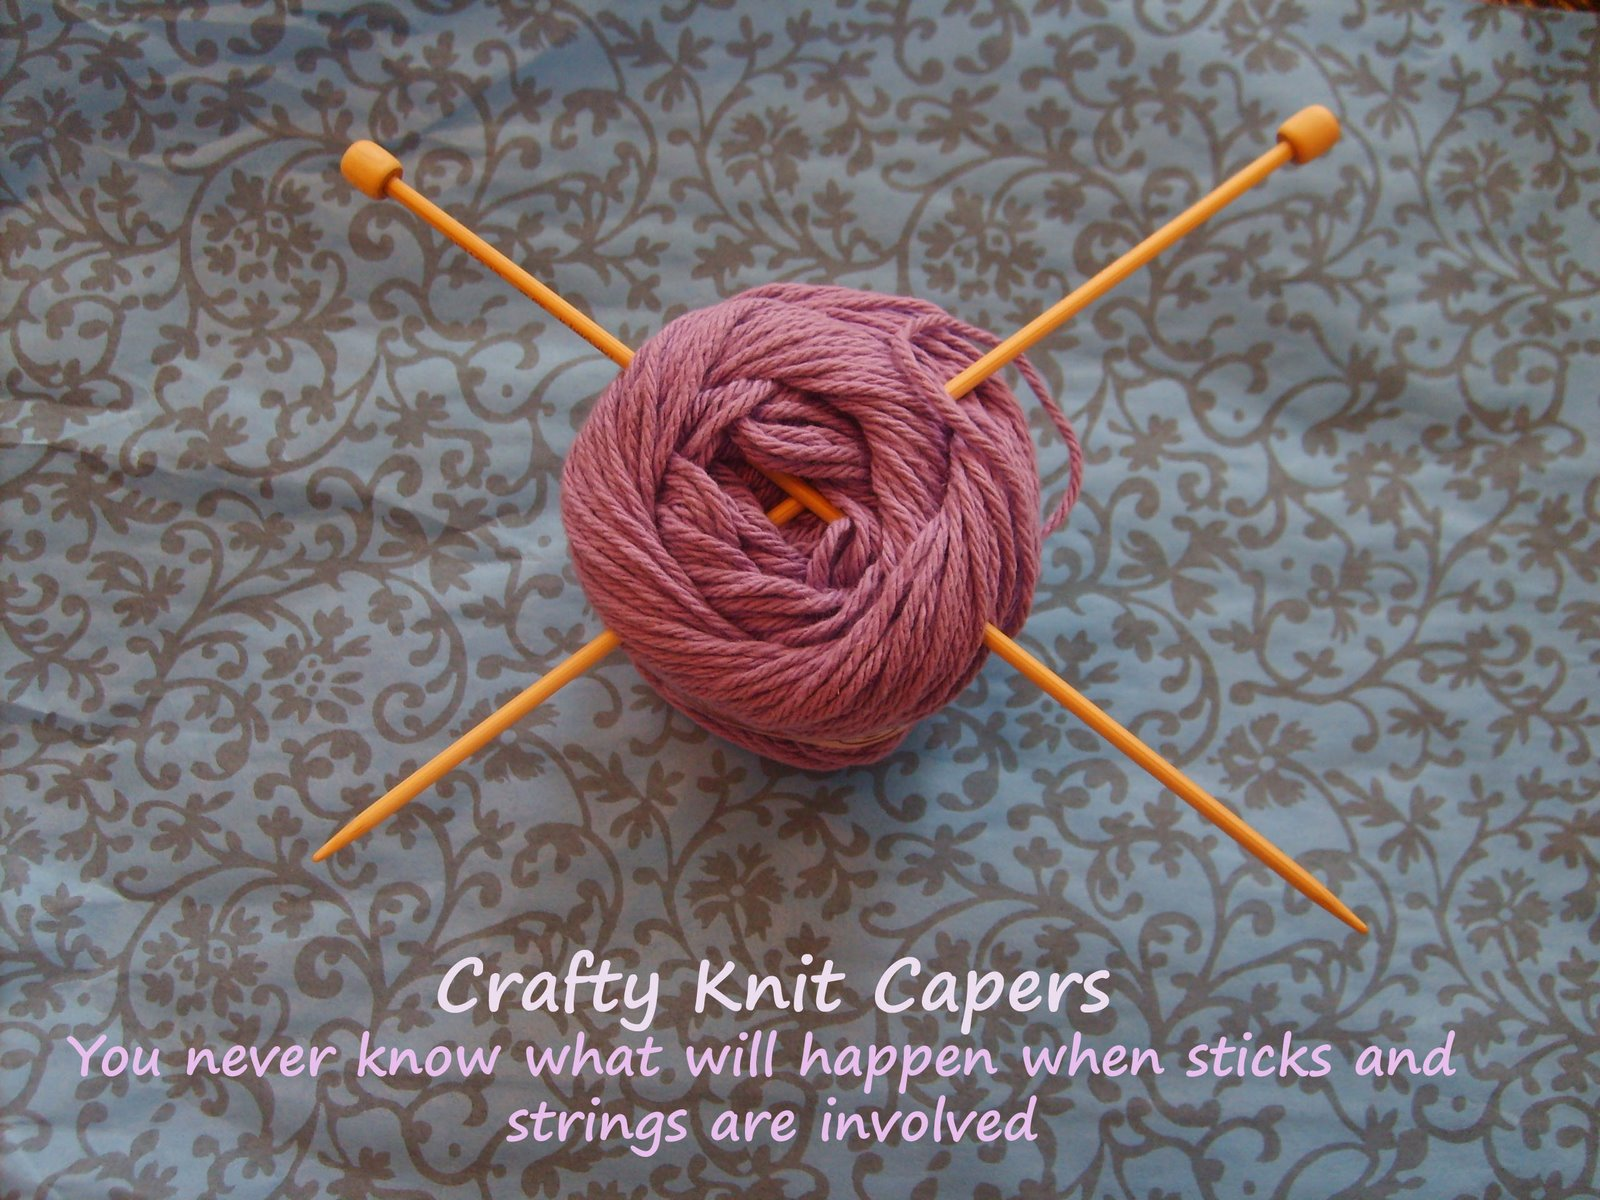 Crafty Knit Capers